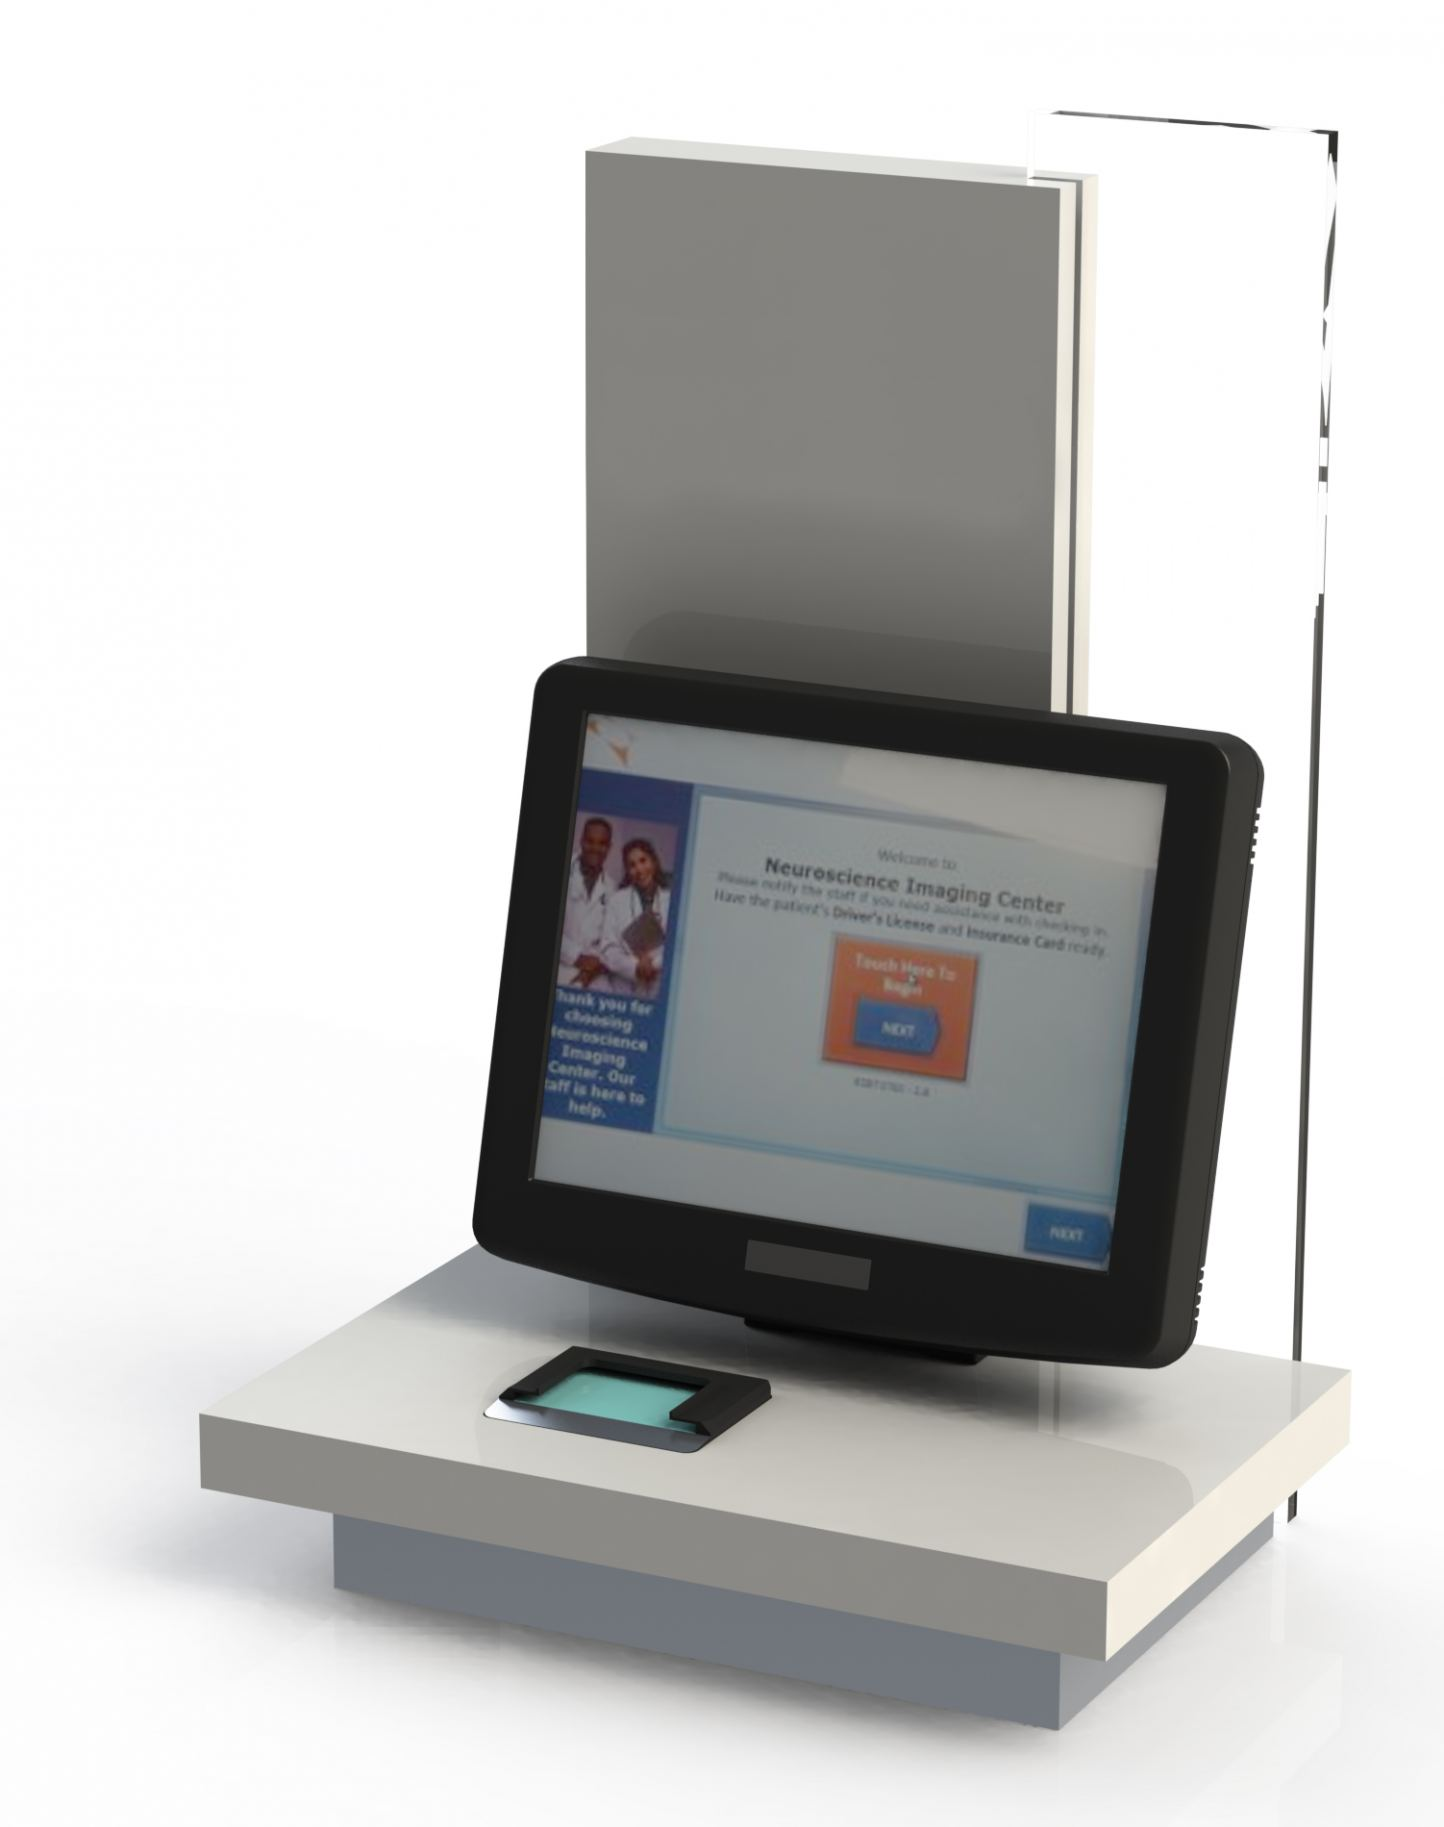 Clearwave's Patient Registration Station Saving Time for Patients and Providers